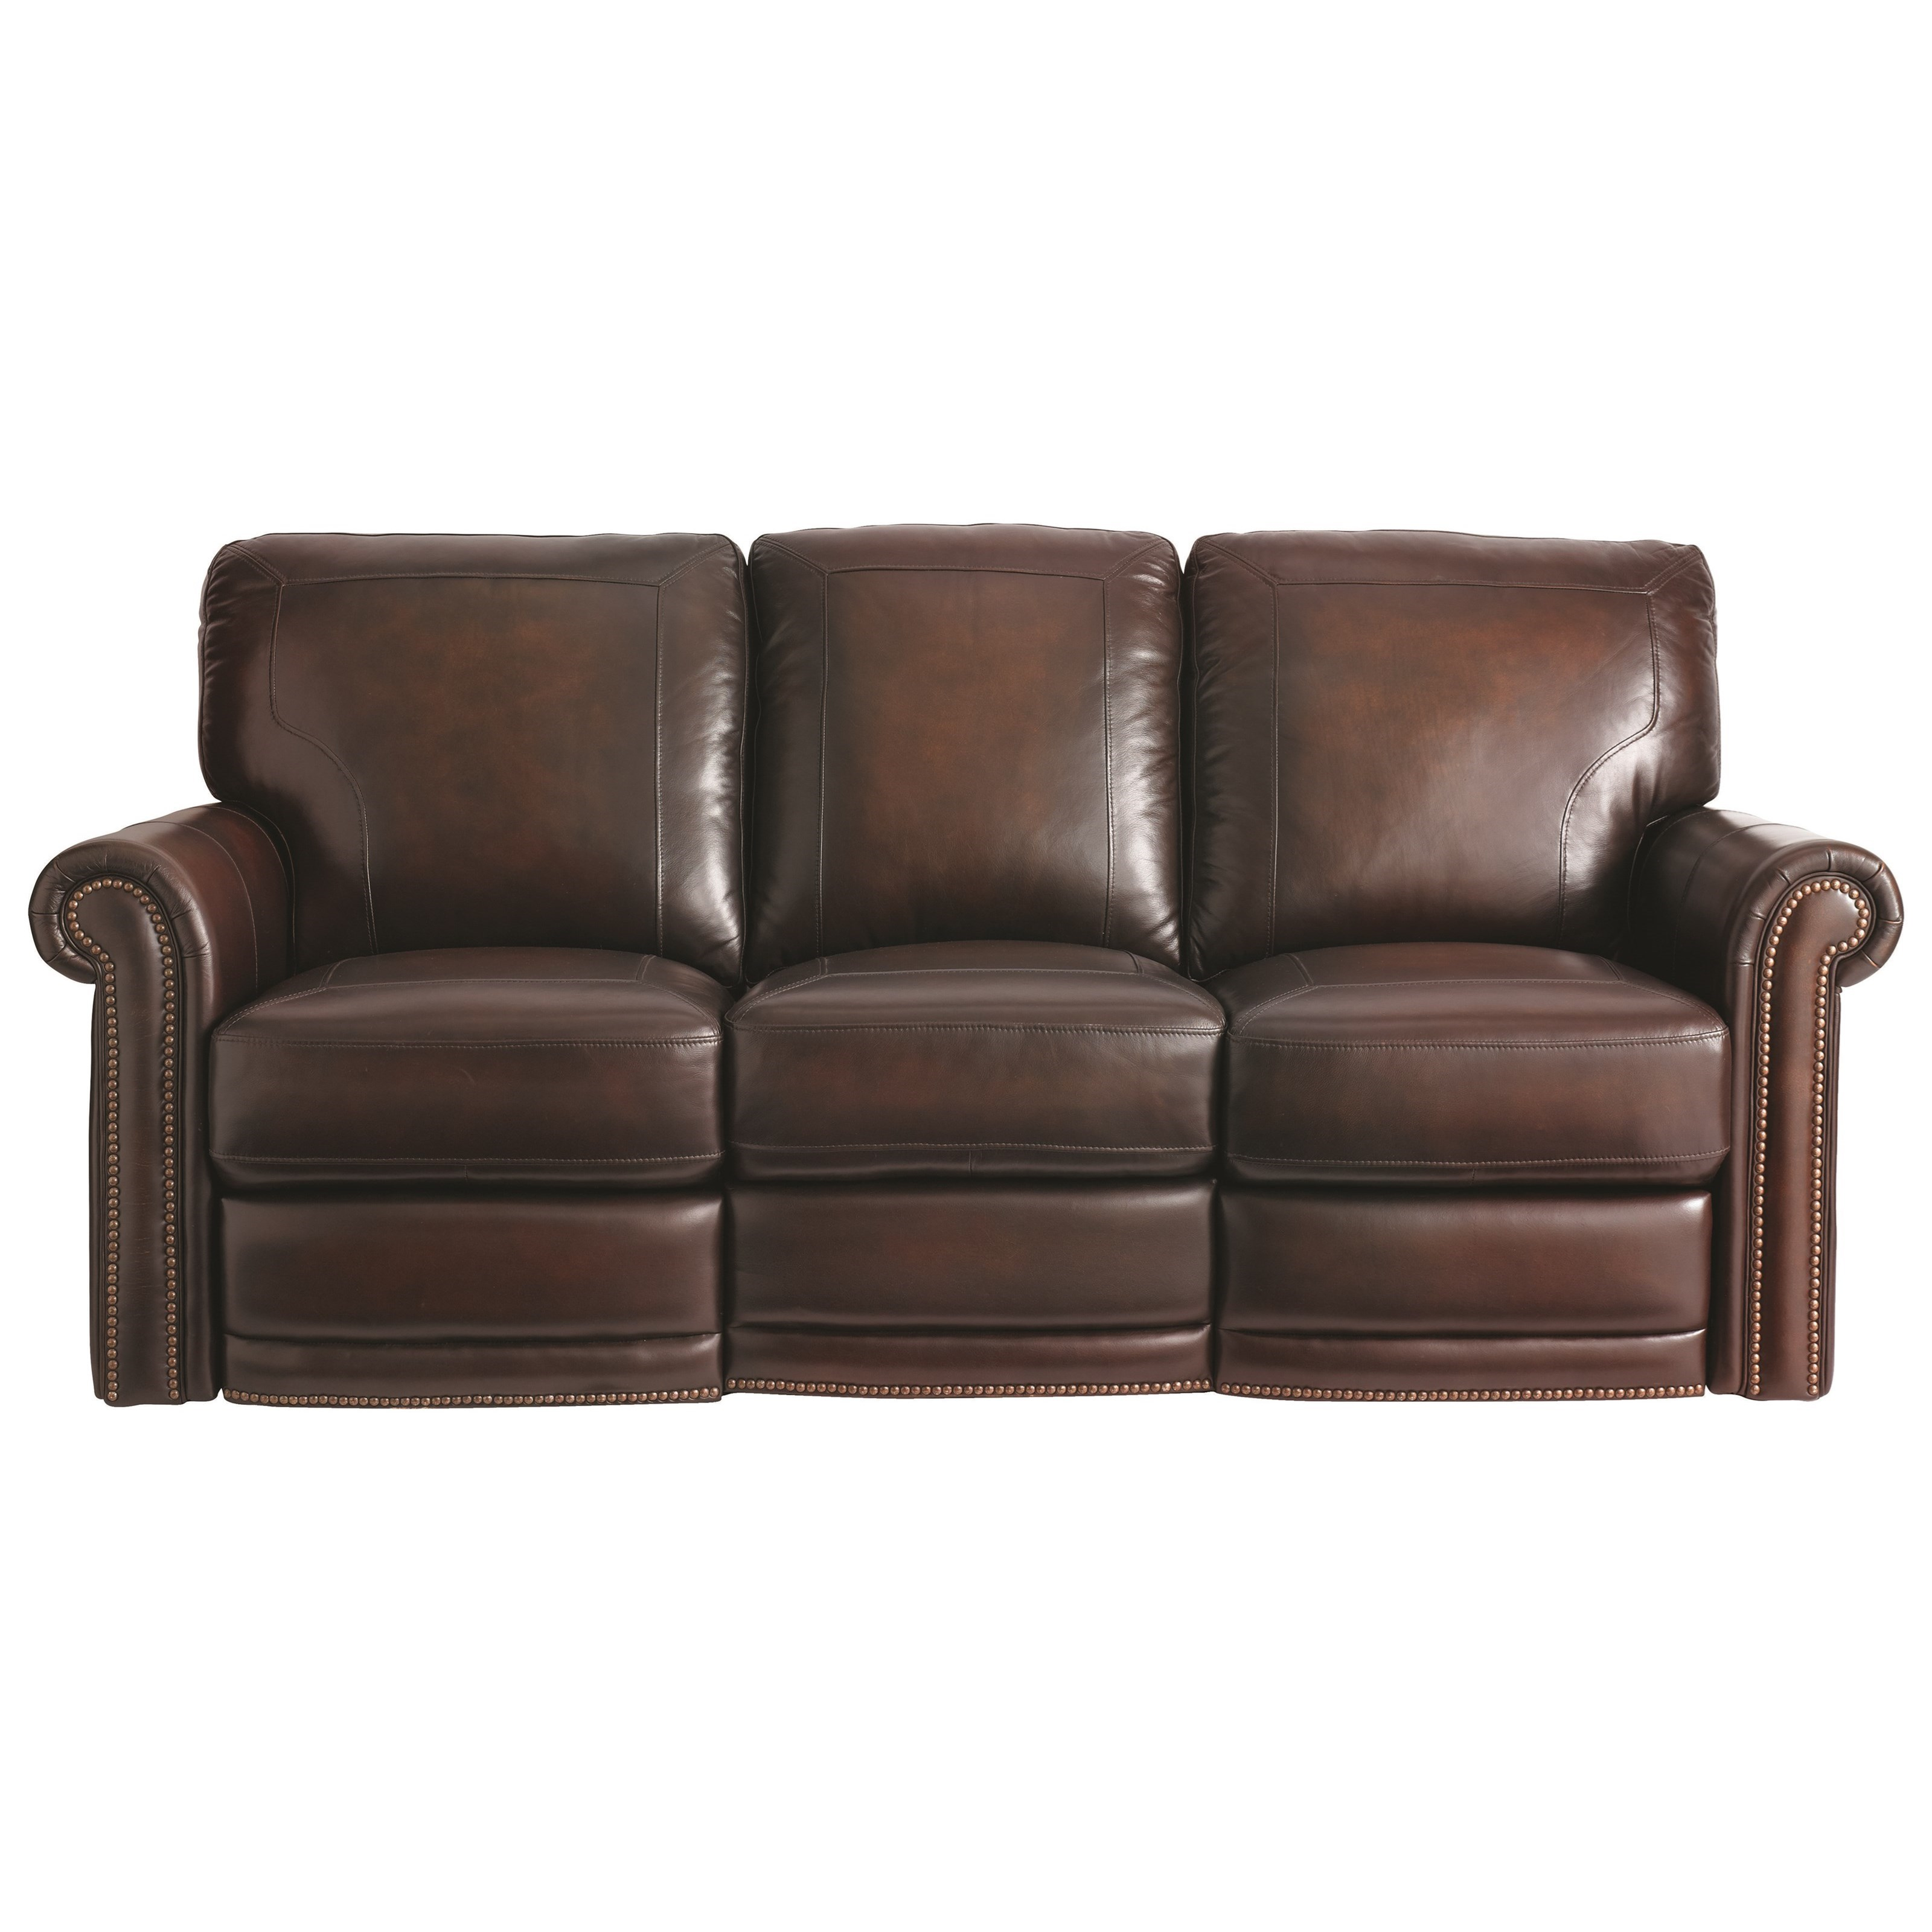 Bassett Hamilton 3958 Power Reclining Sofa - Item Number 3958-P62MS  sc 1 st  Great American Home Store : american leather recliners - islam-shia.org